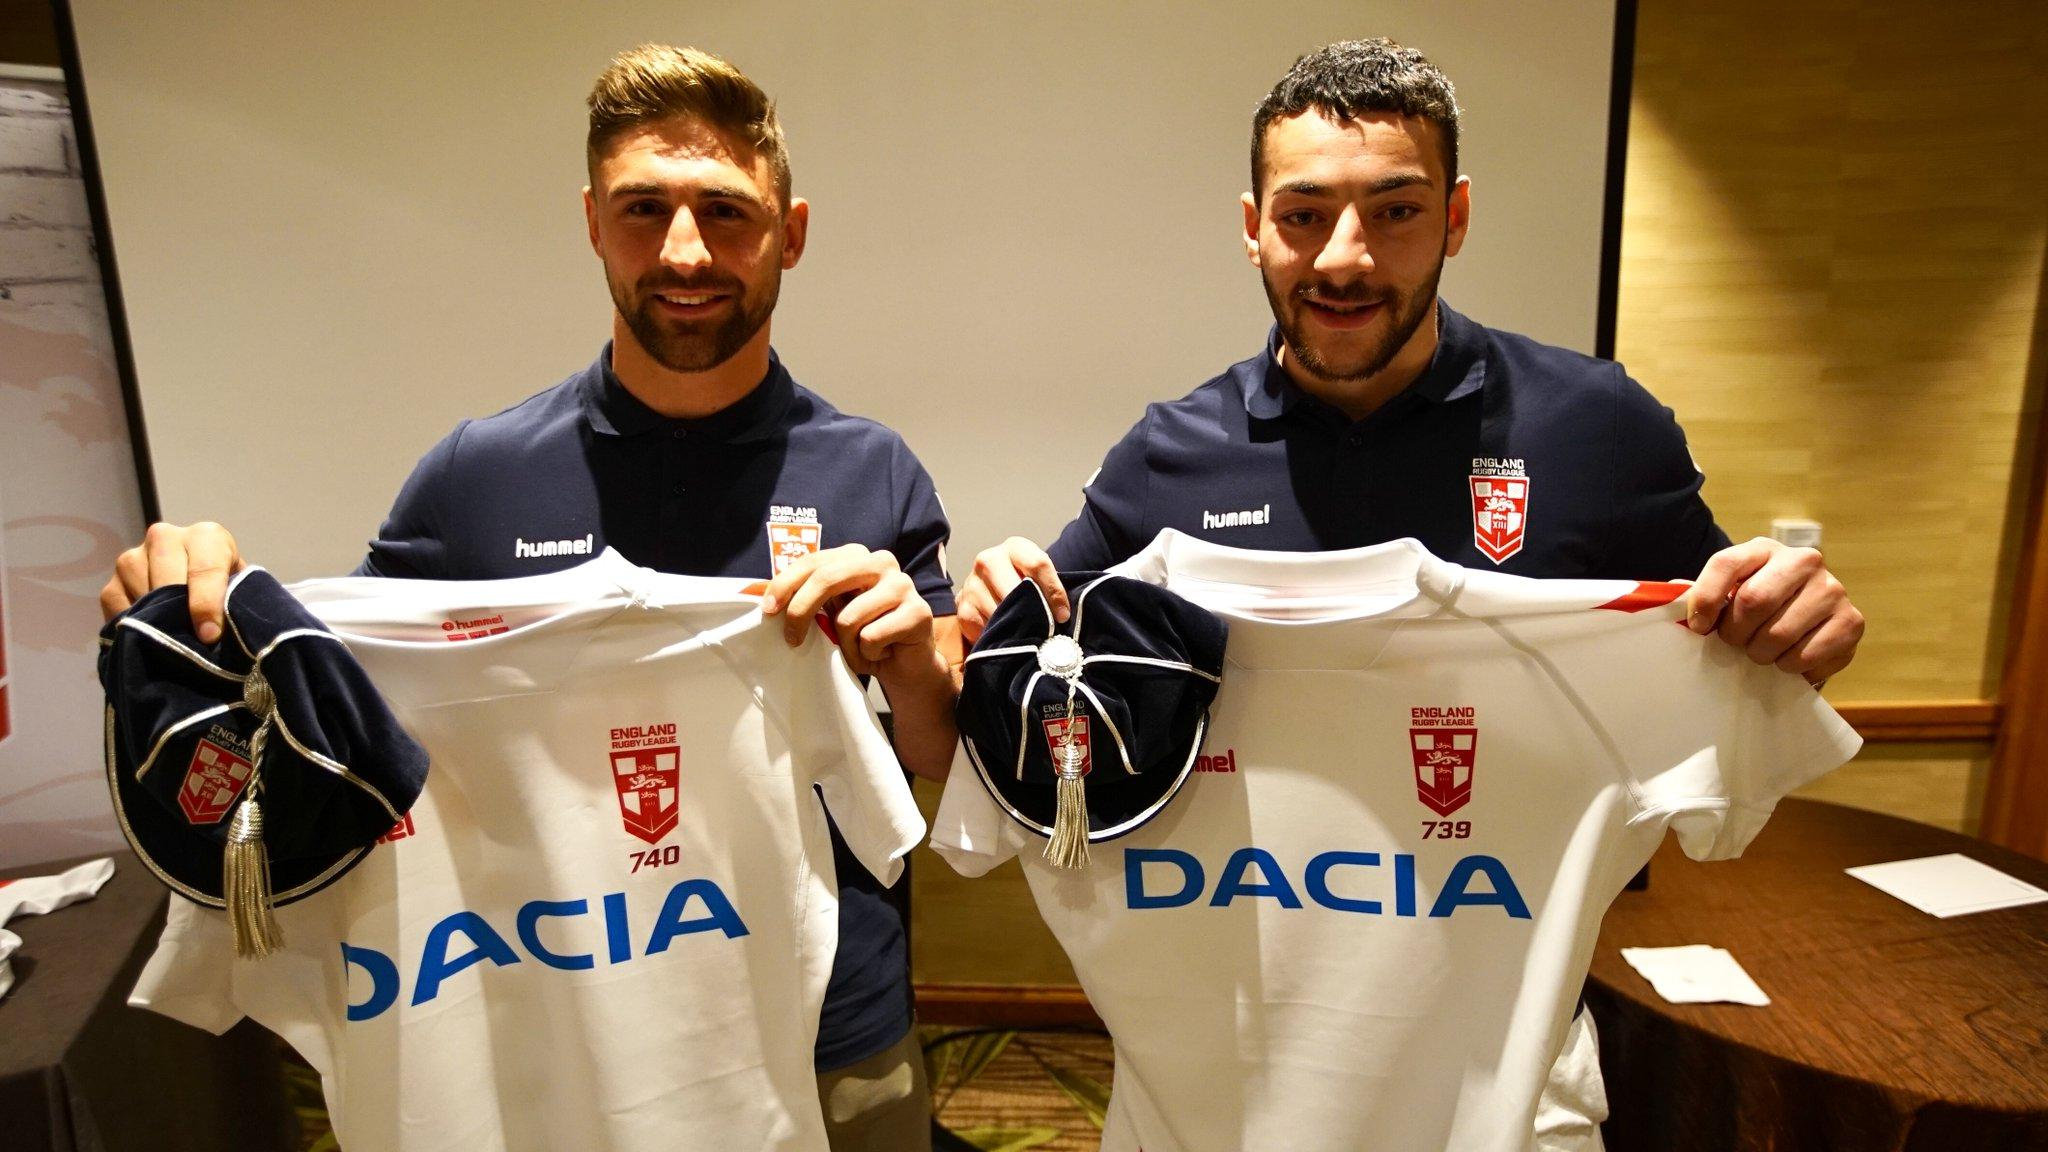 Jake Connor (right) and Tommy Makinson both scored tries on their England debut